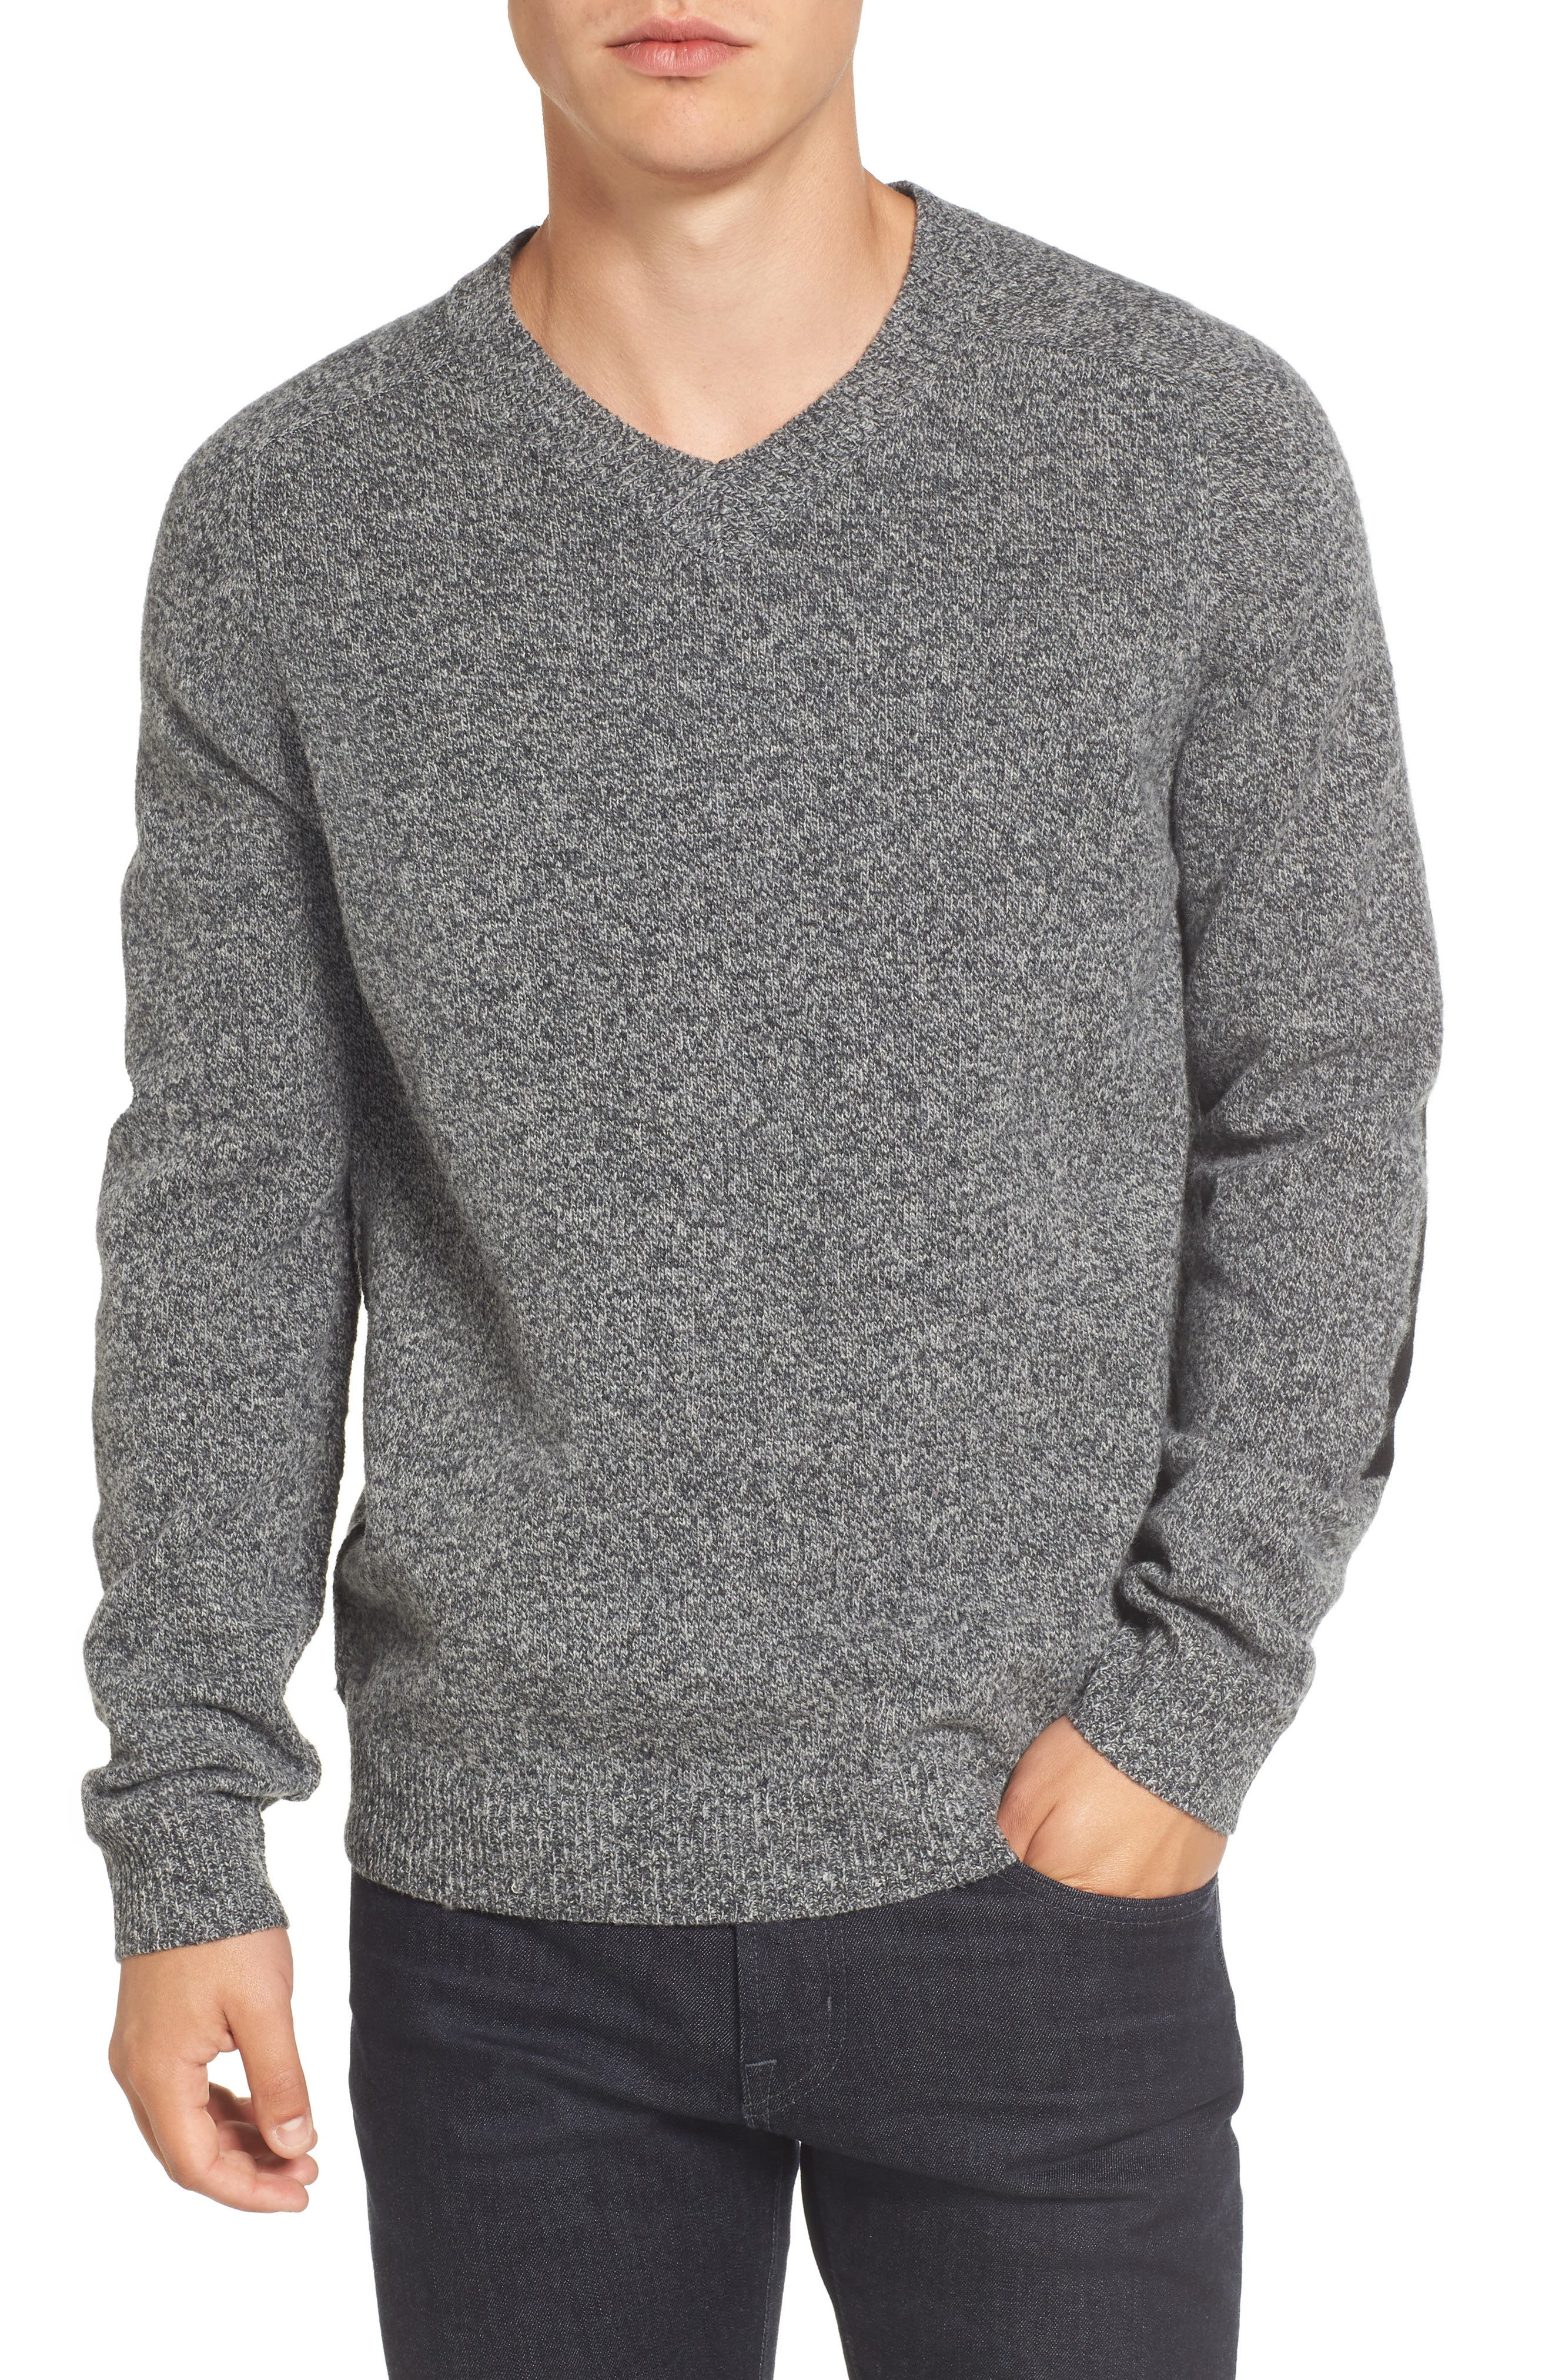 Elbow Patch Sweater,                             Main thumbnail 1, color,